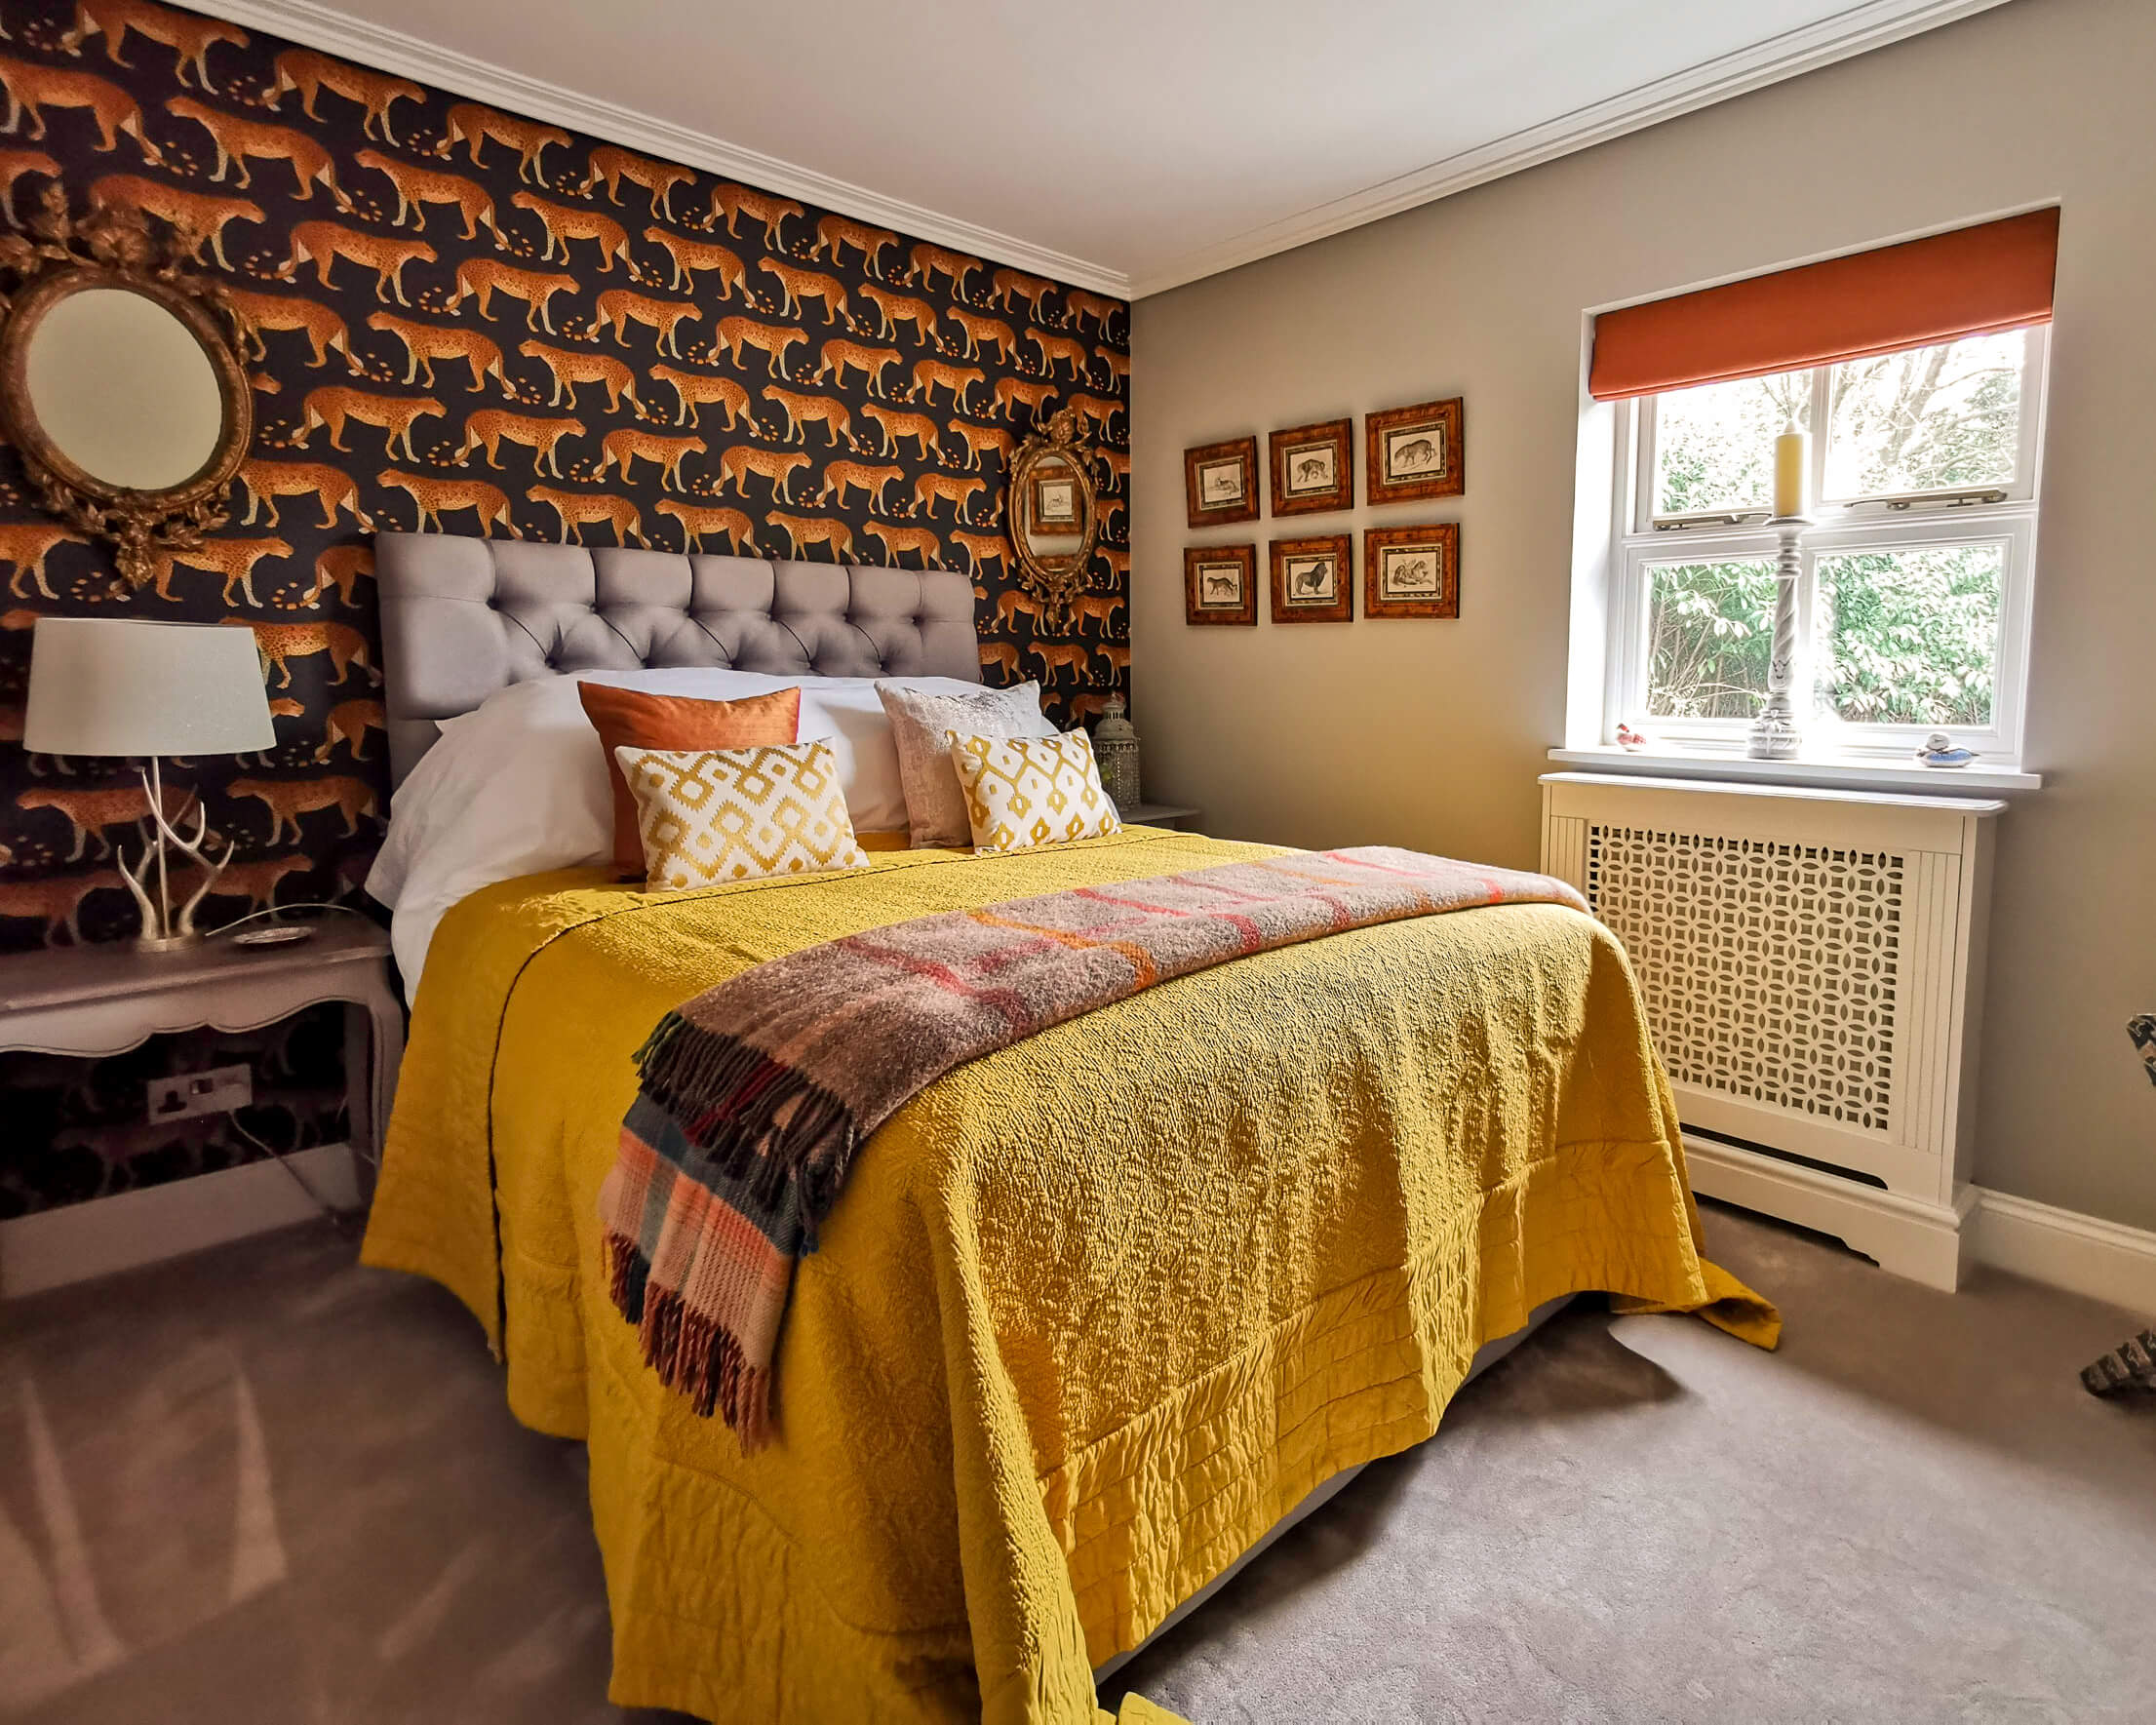 Orange roman blind and bed dressings